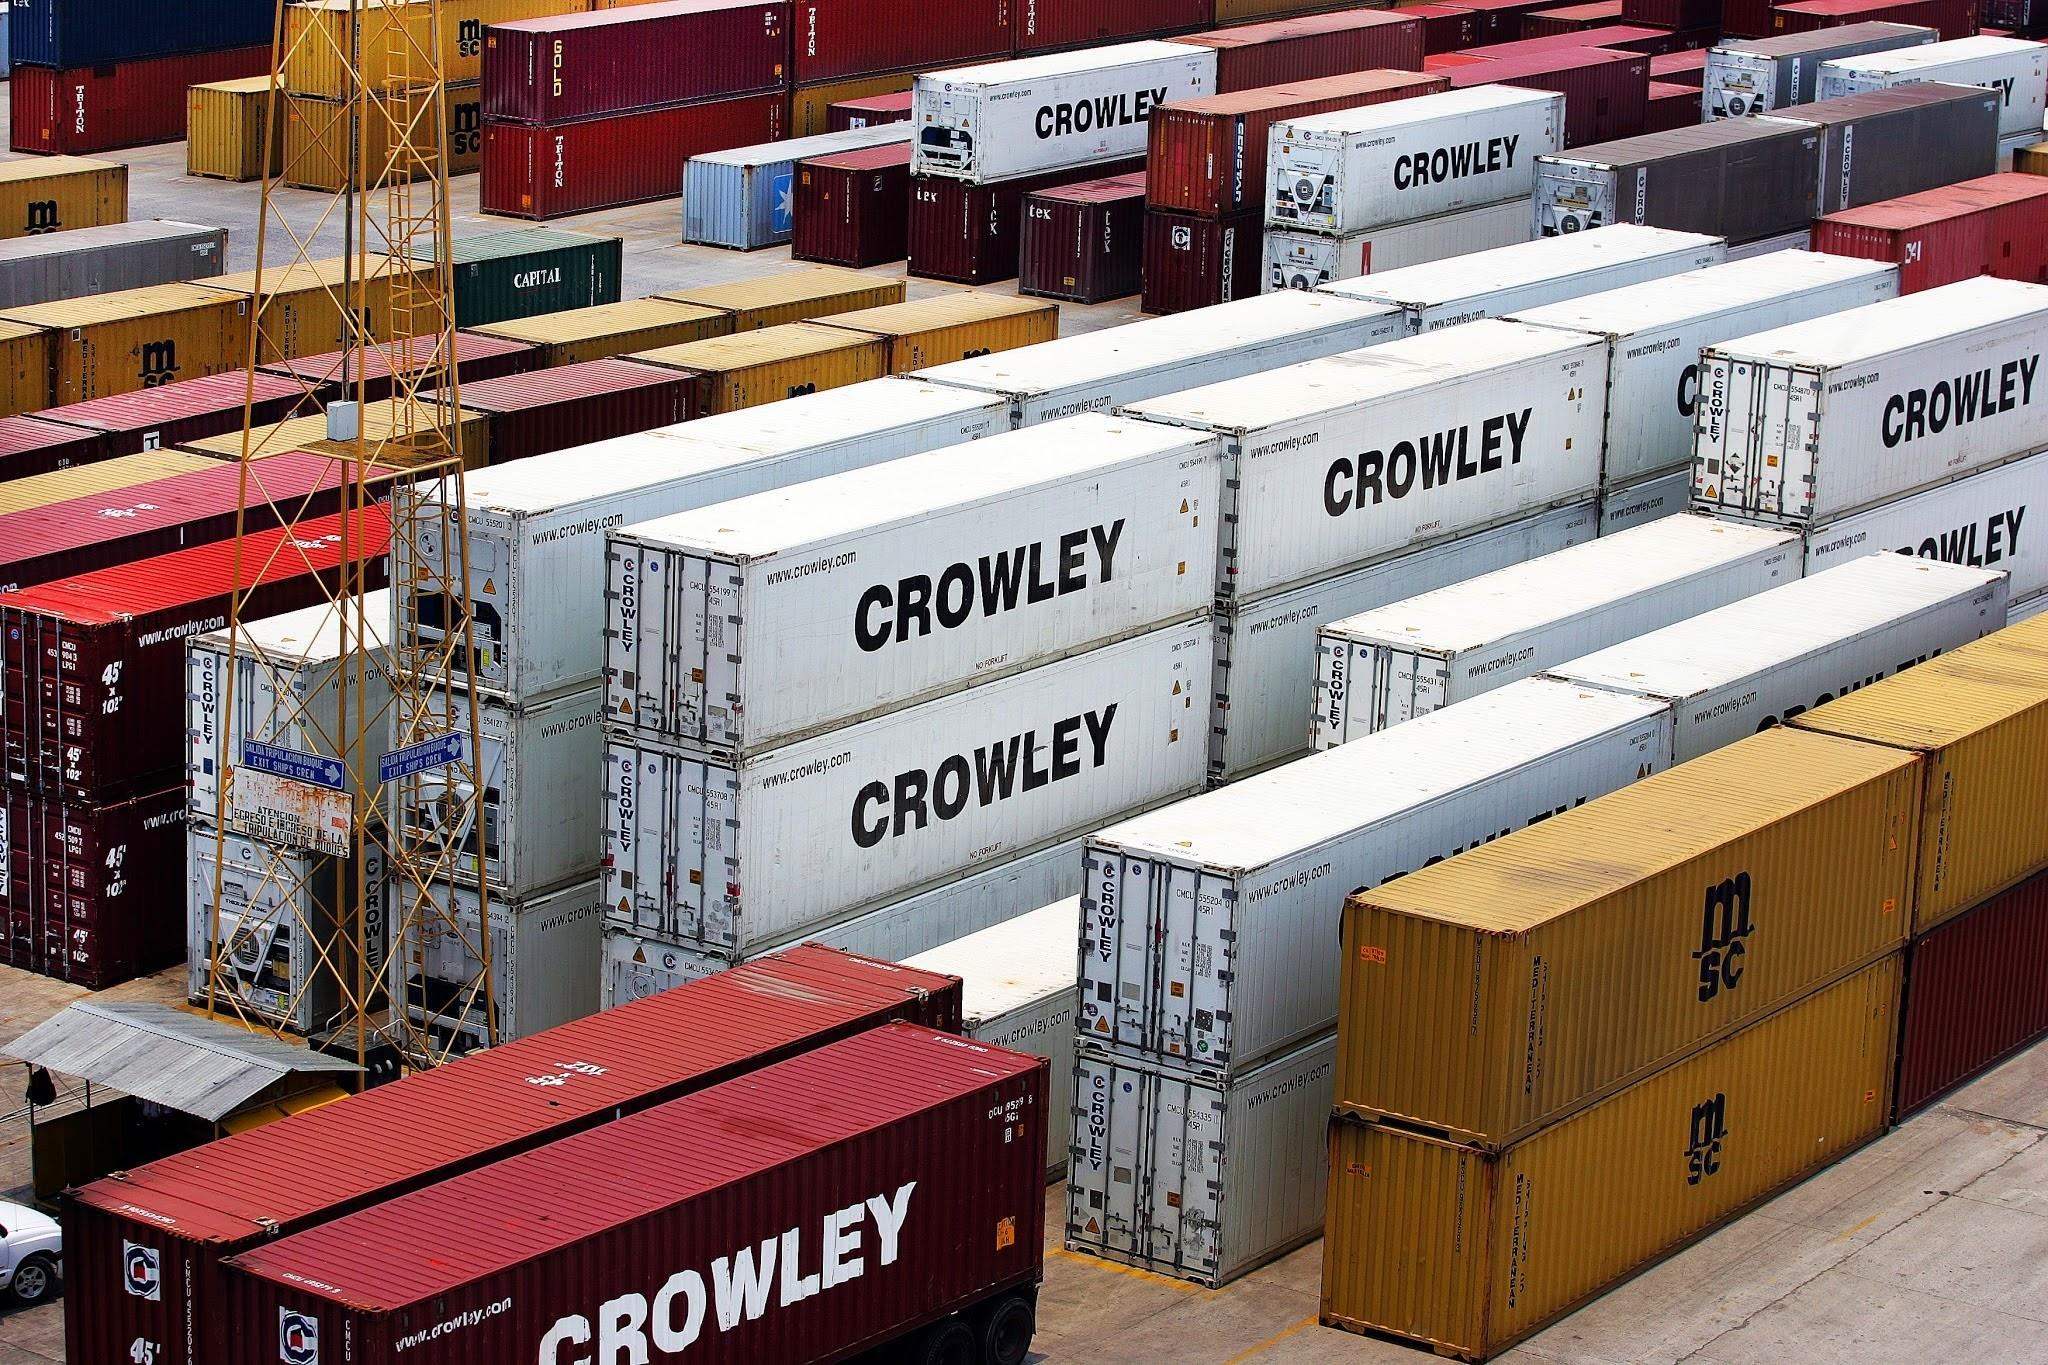 Crowley Liner & Logistics